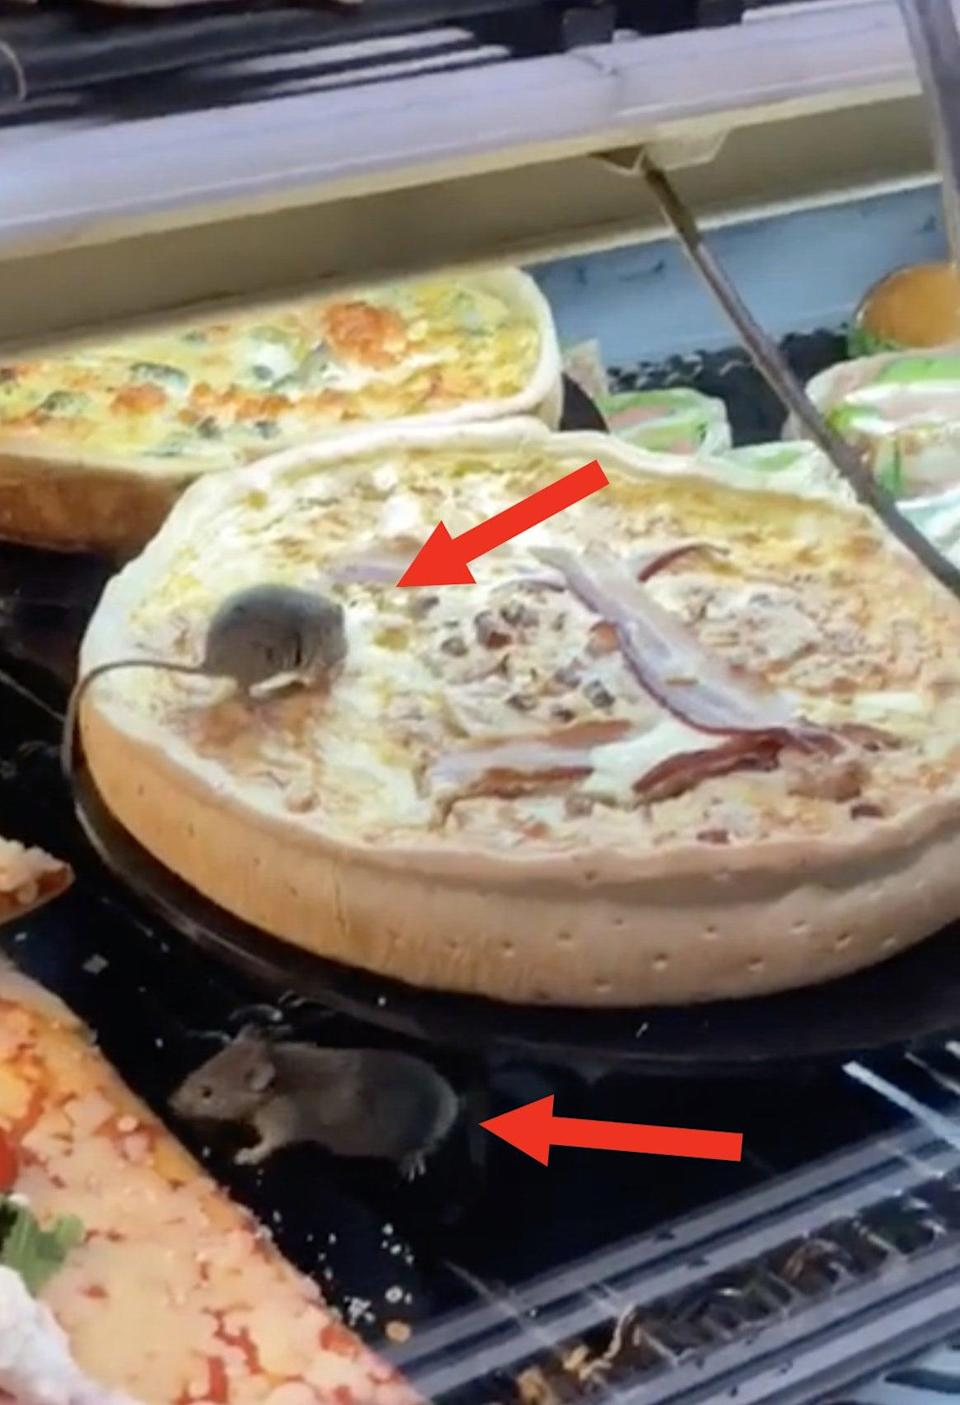 Rats are in a restaurant's display case, sitting on the pizzas